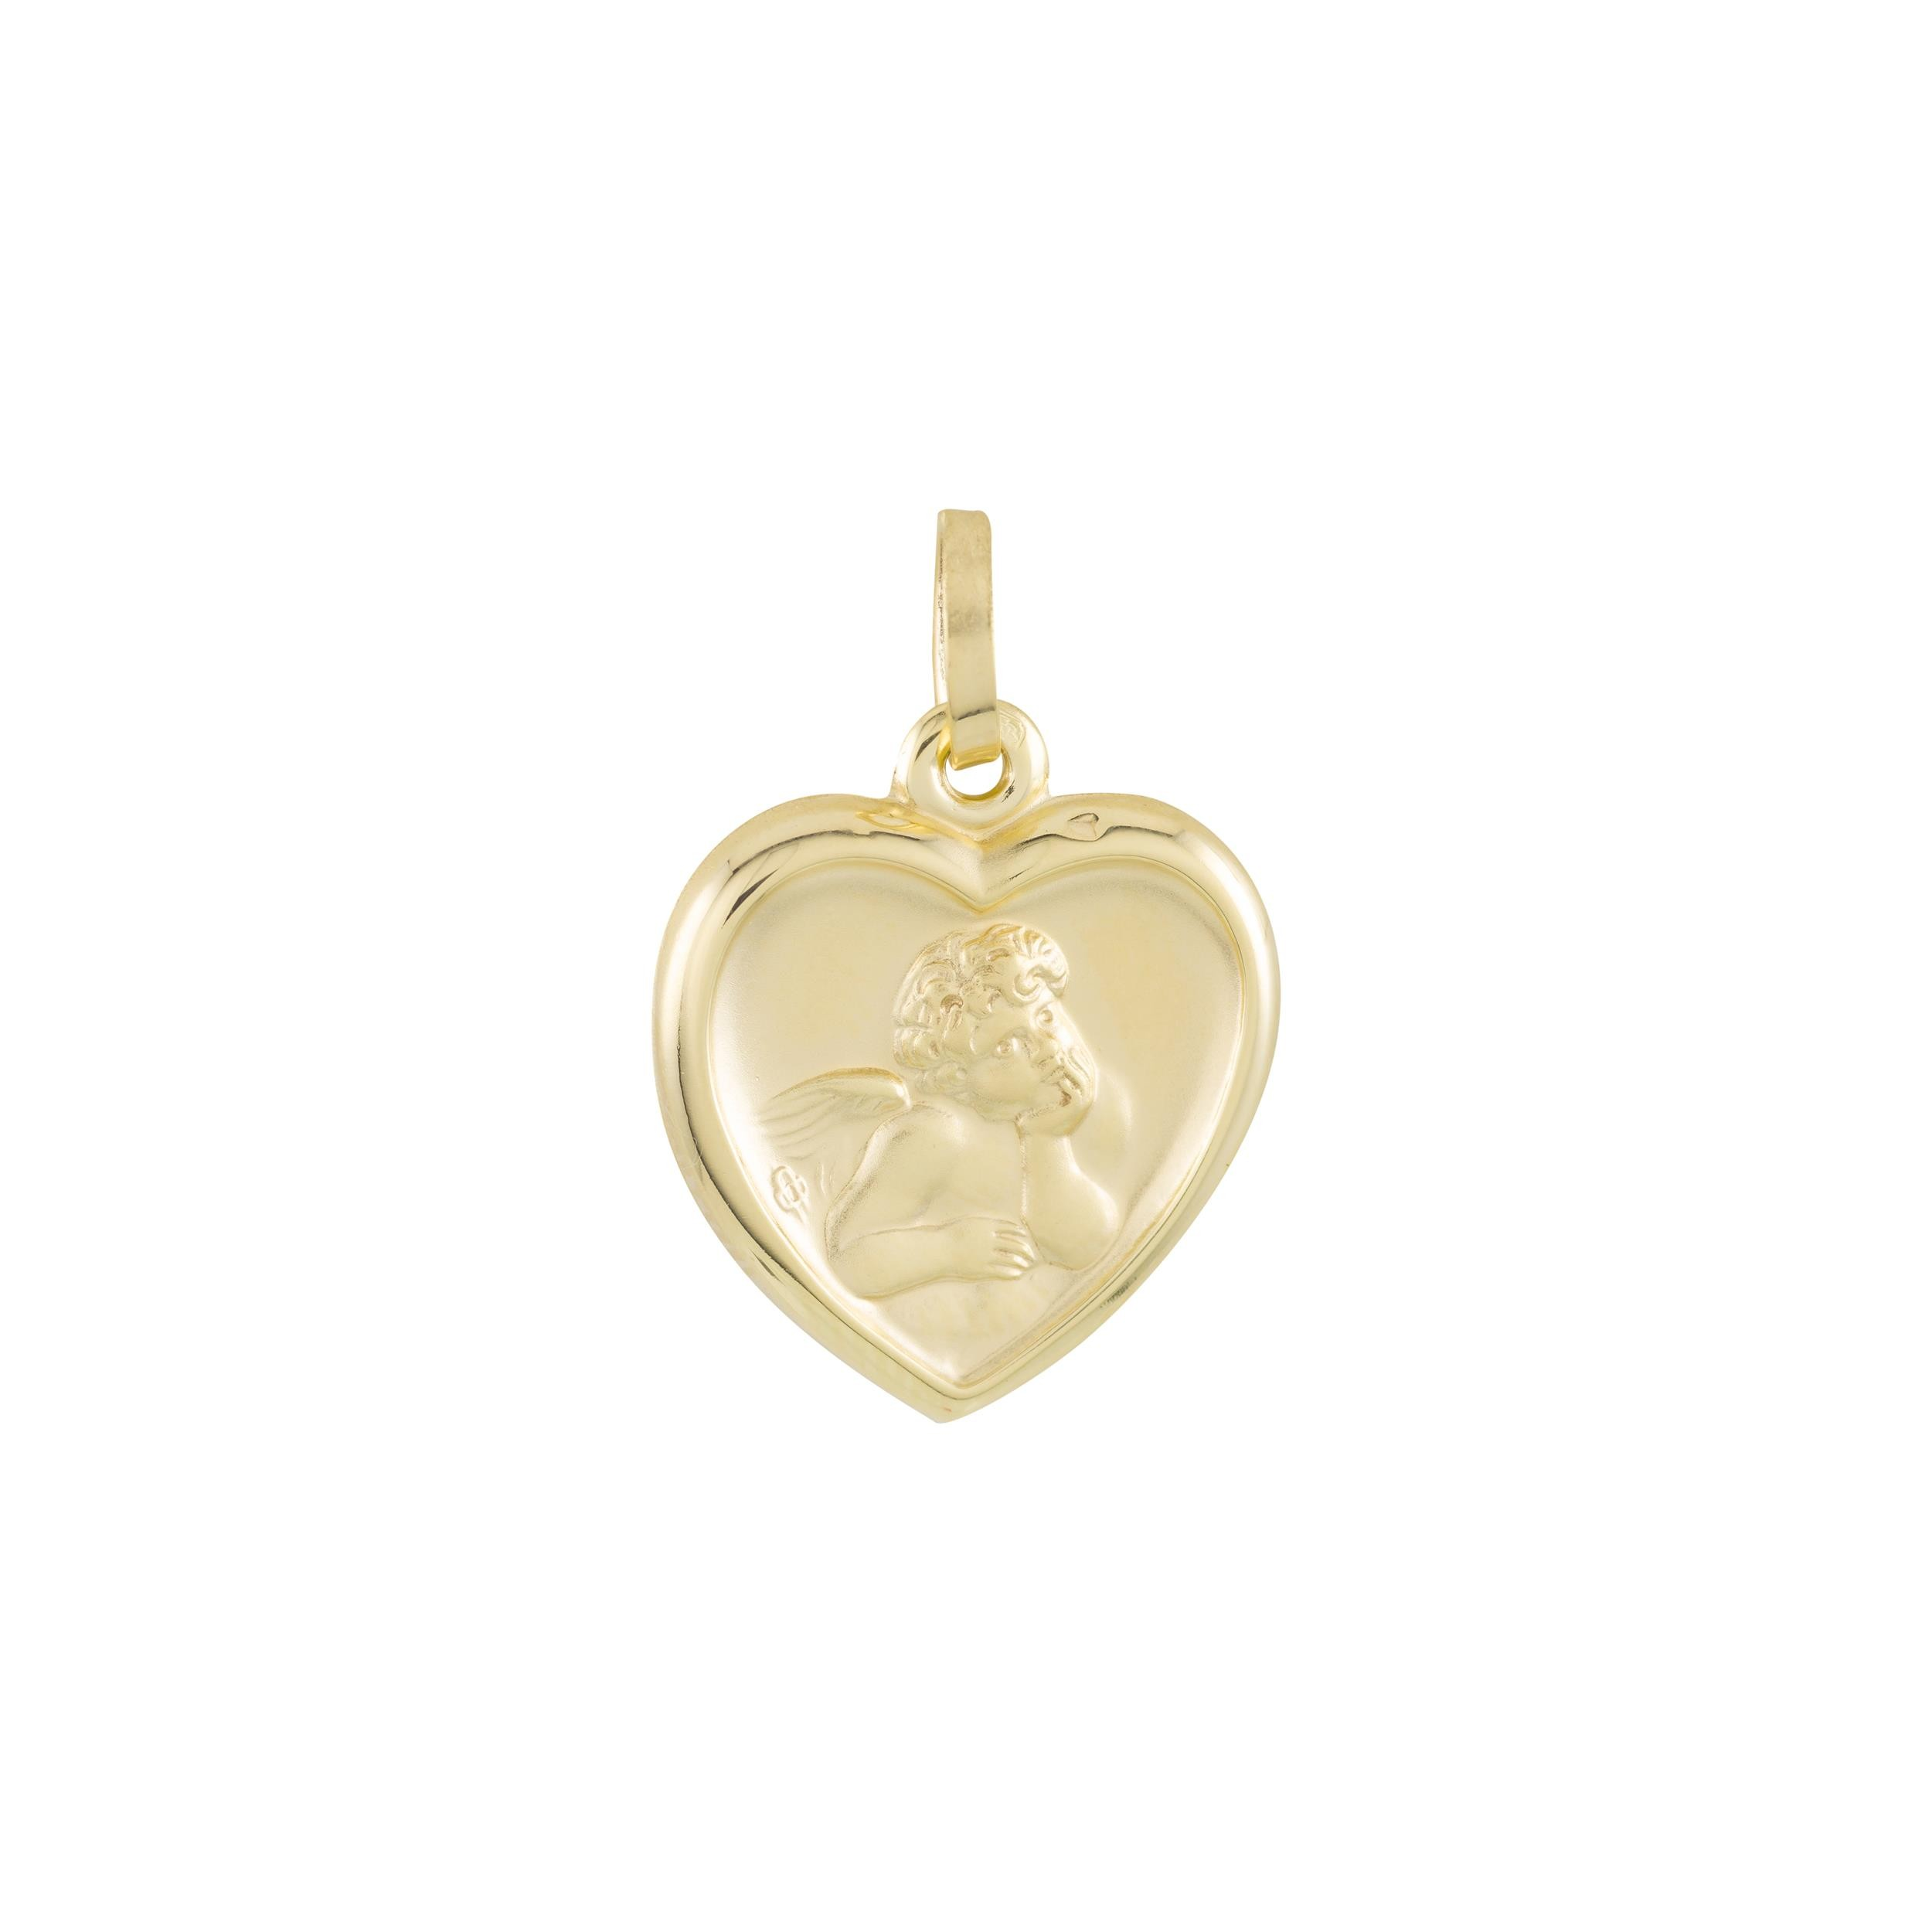 Gouden religious 21 x 14 mm - cupido - hart - hol 247.0051.00